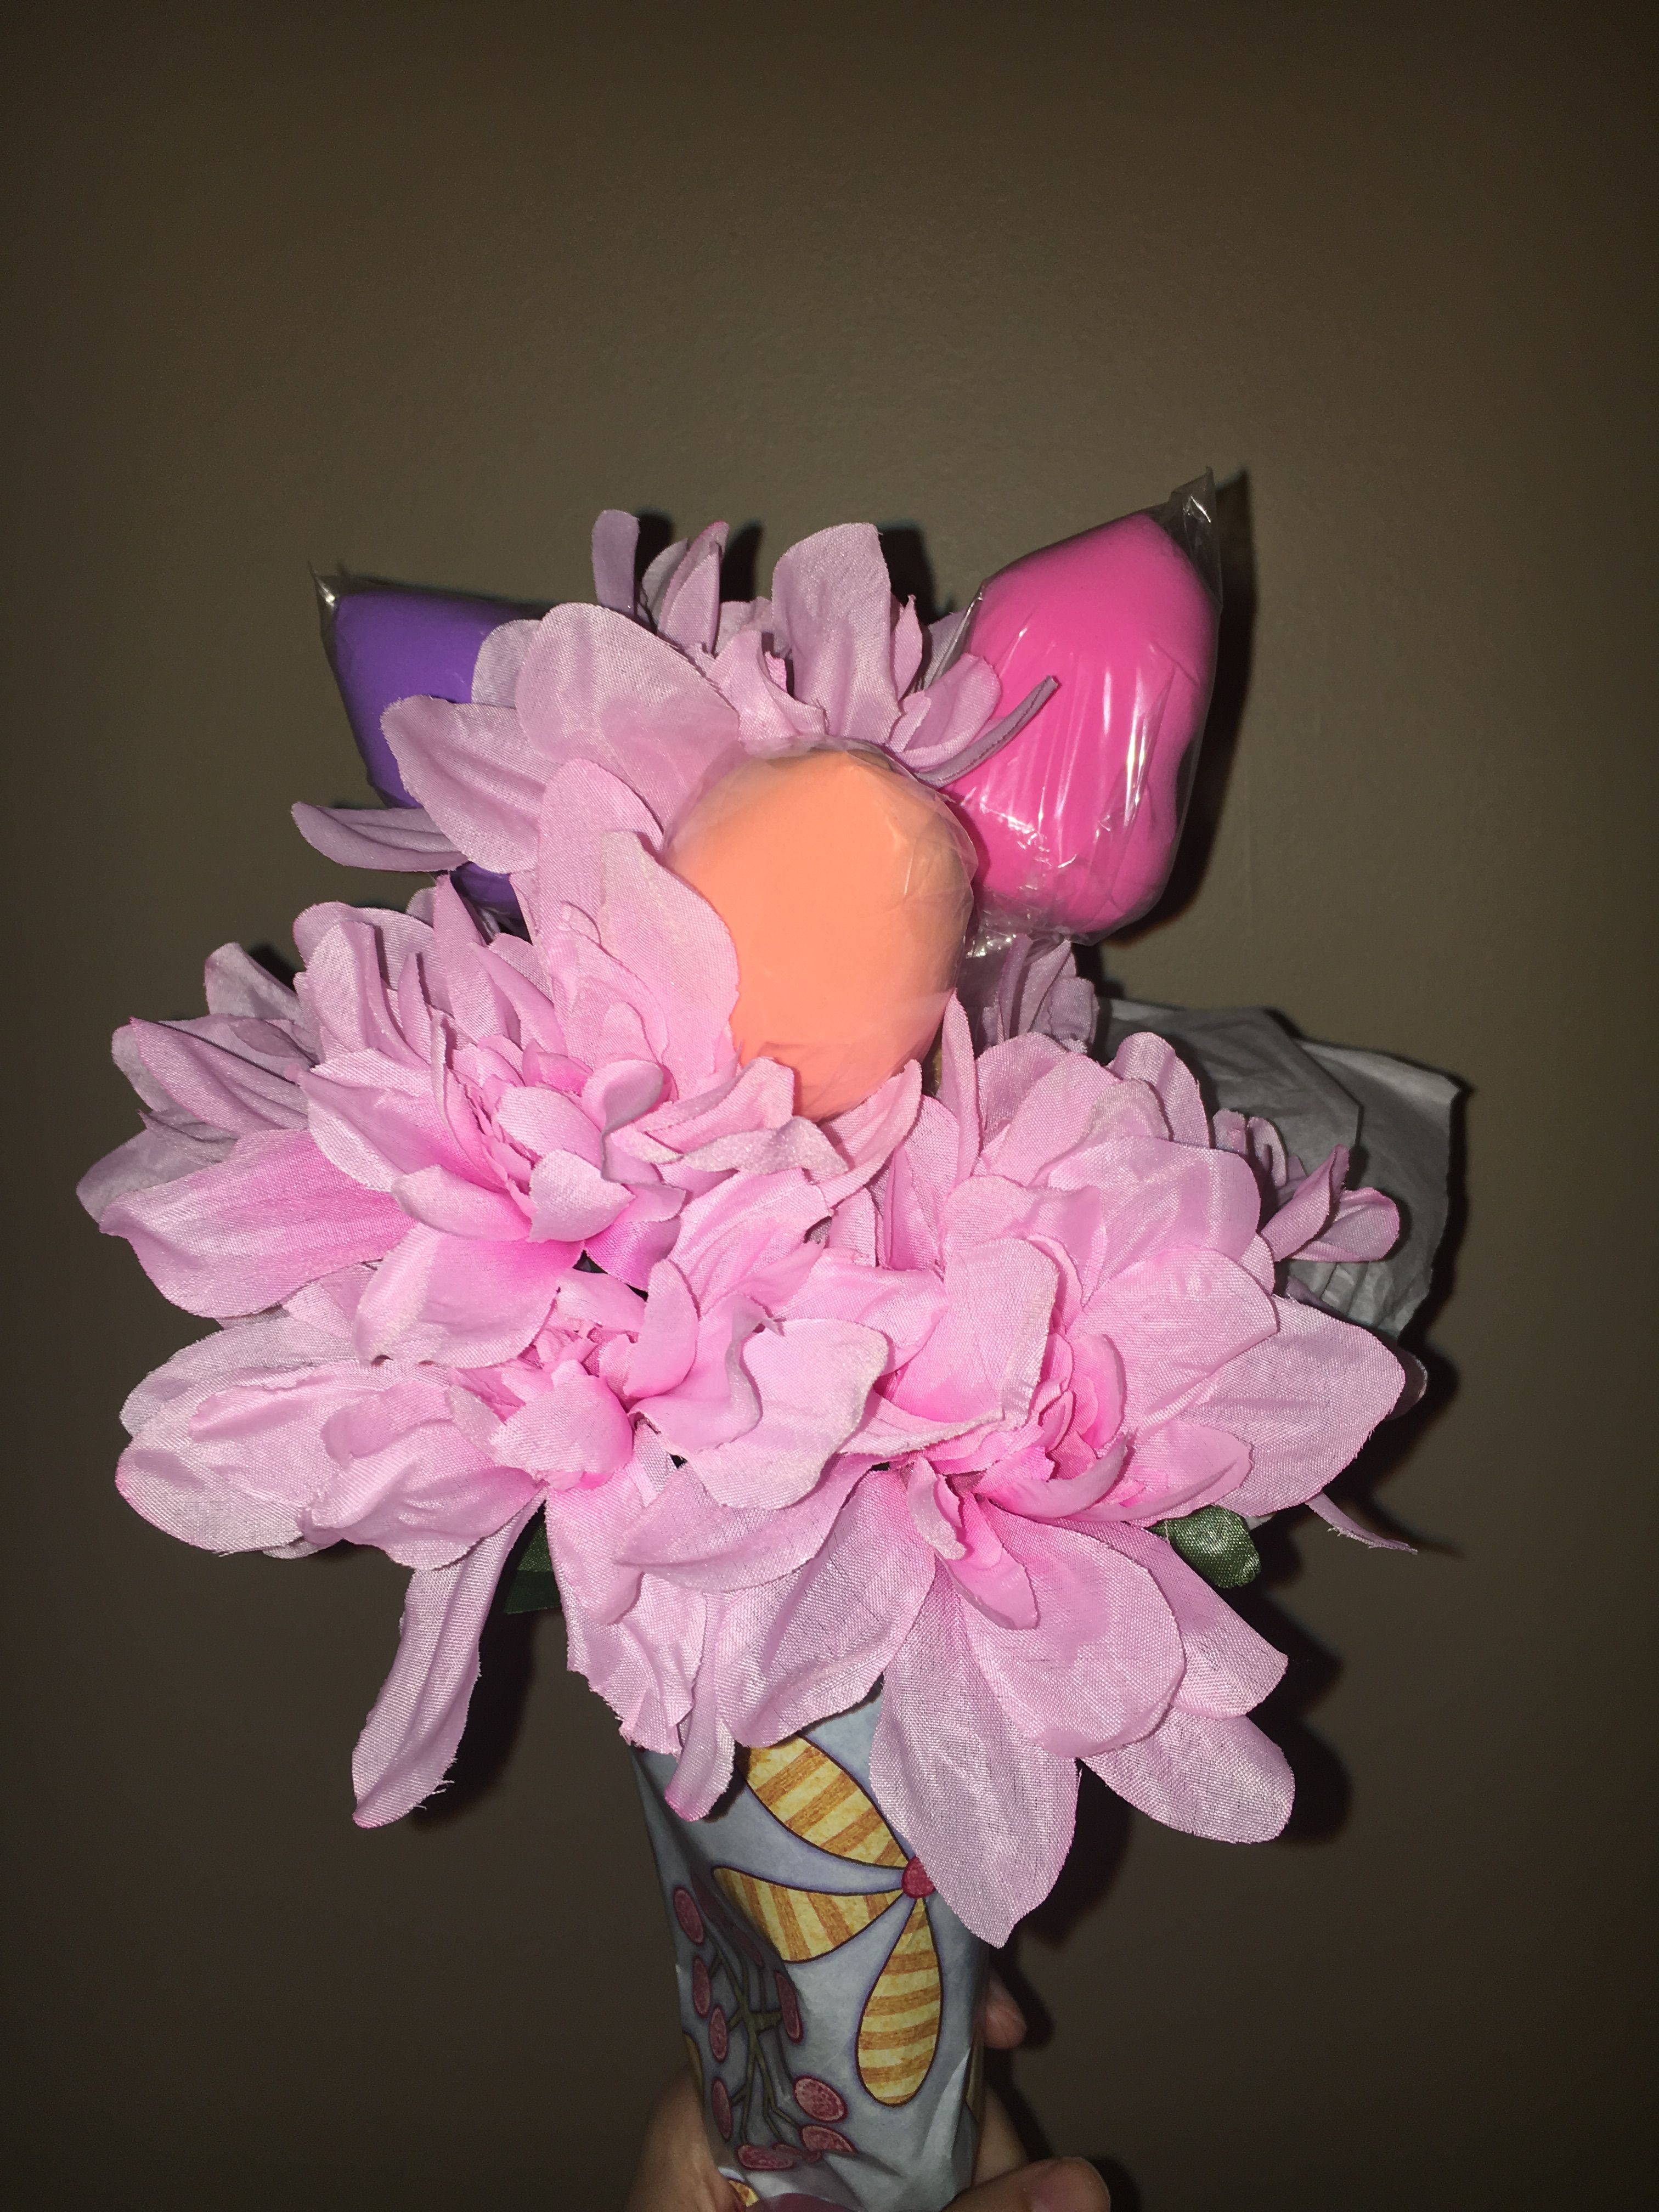 A beauty blender bouquet is the perfect gift for any girl my mom